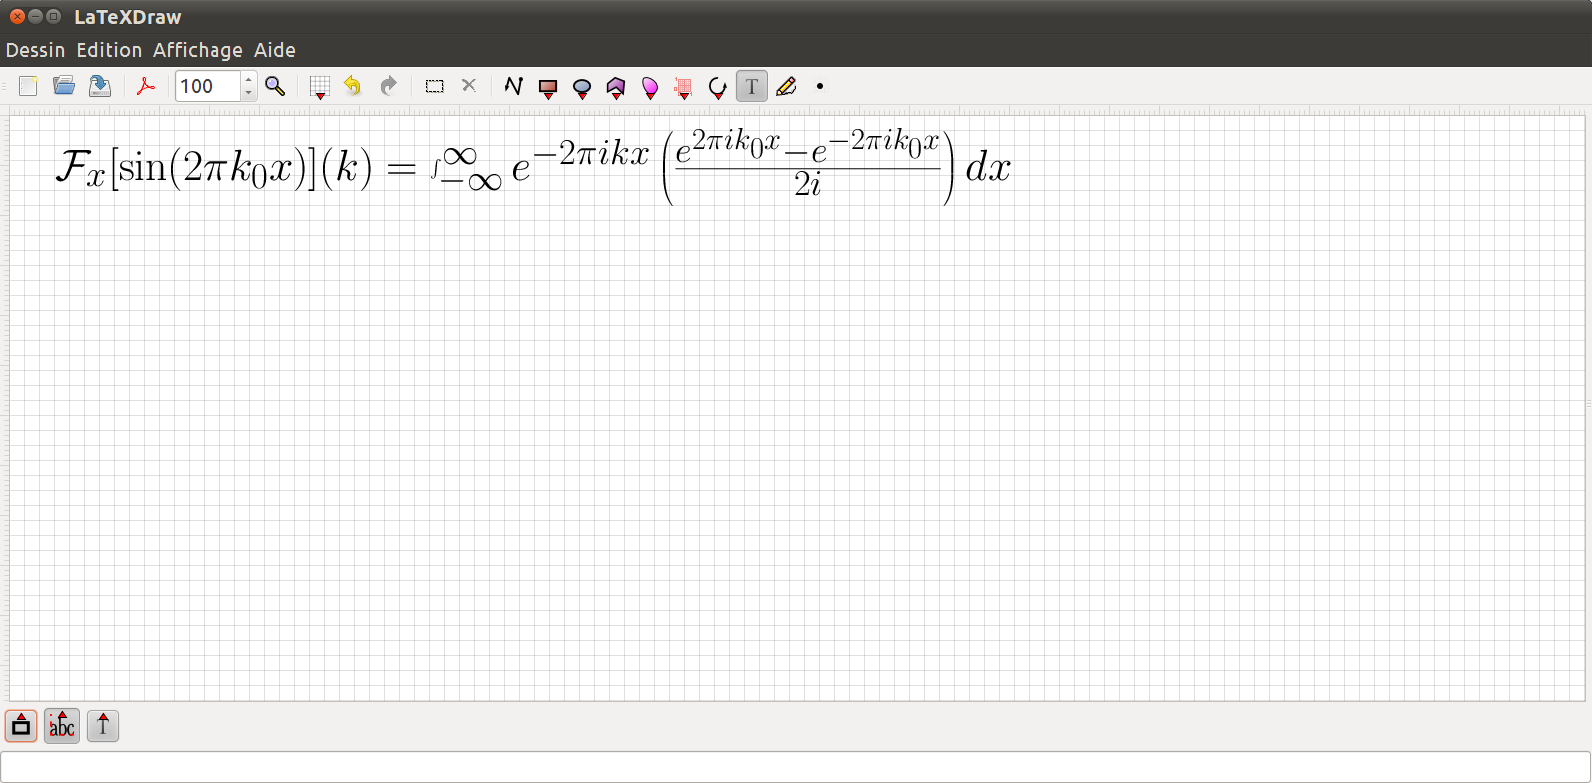 LaTeXDraw - A vector drawing editor for LaTeX